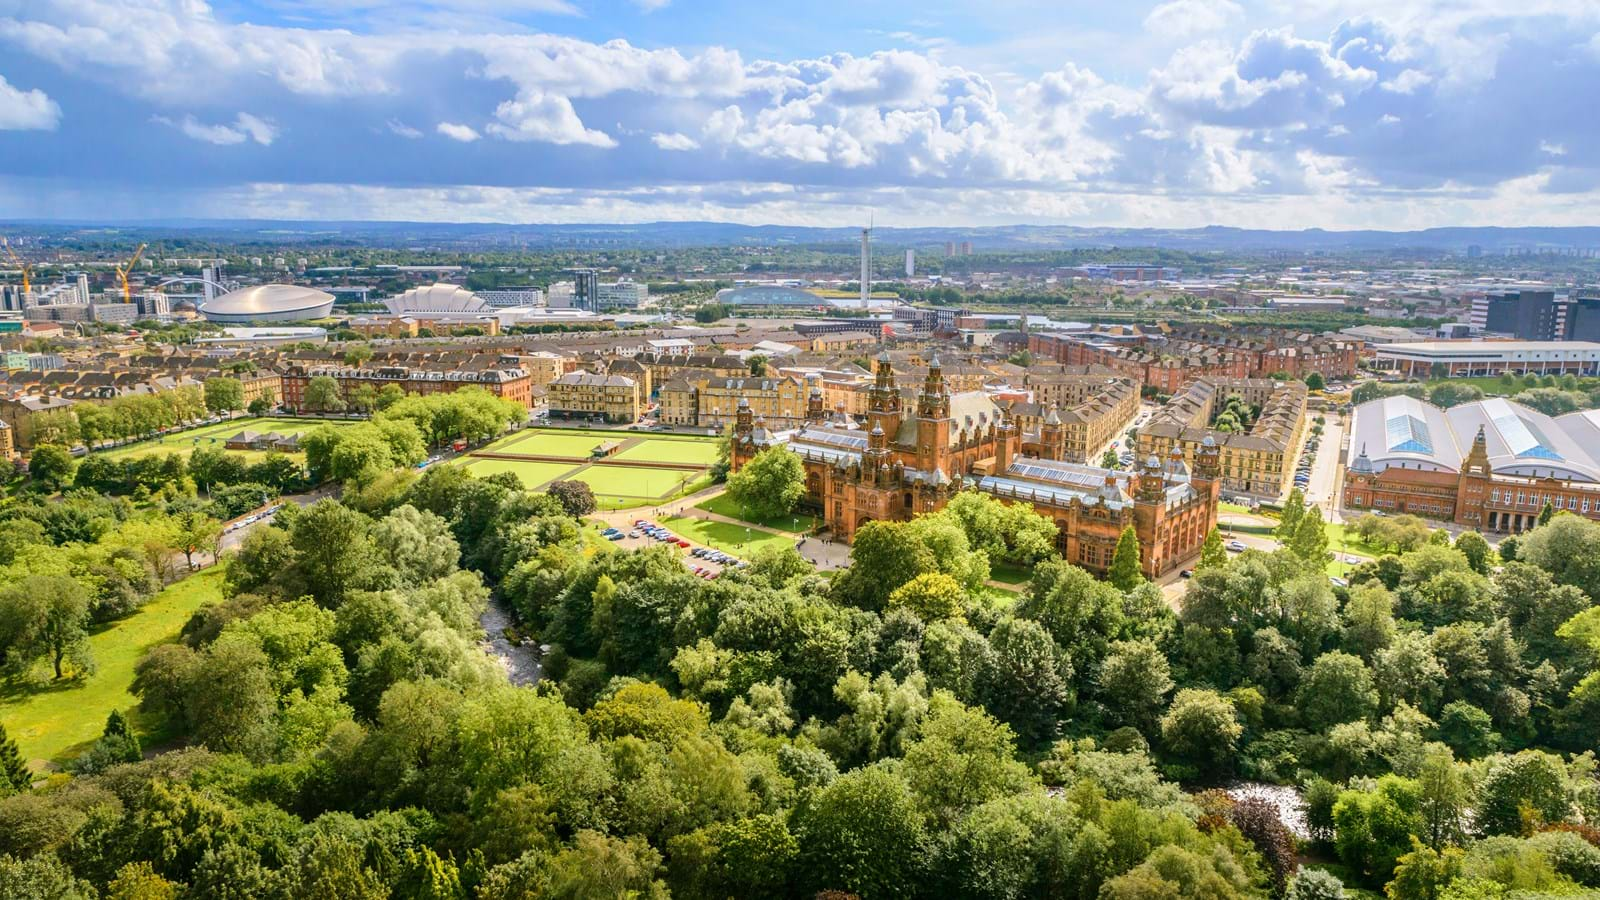 Ariel view of Kelvingrove Art Gallery and Museum